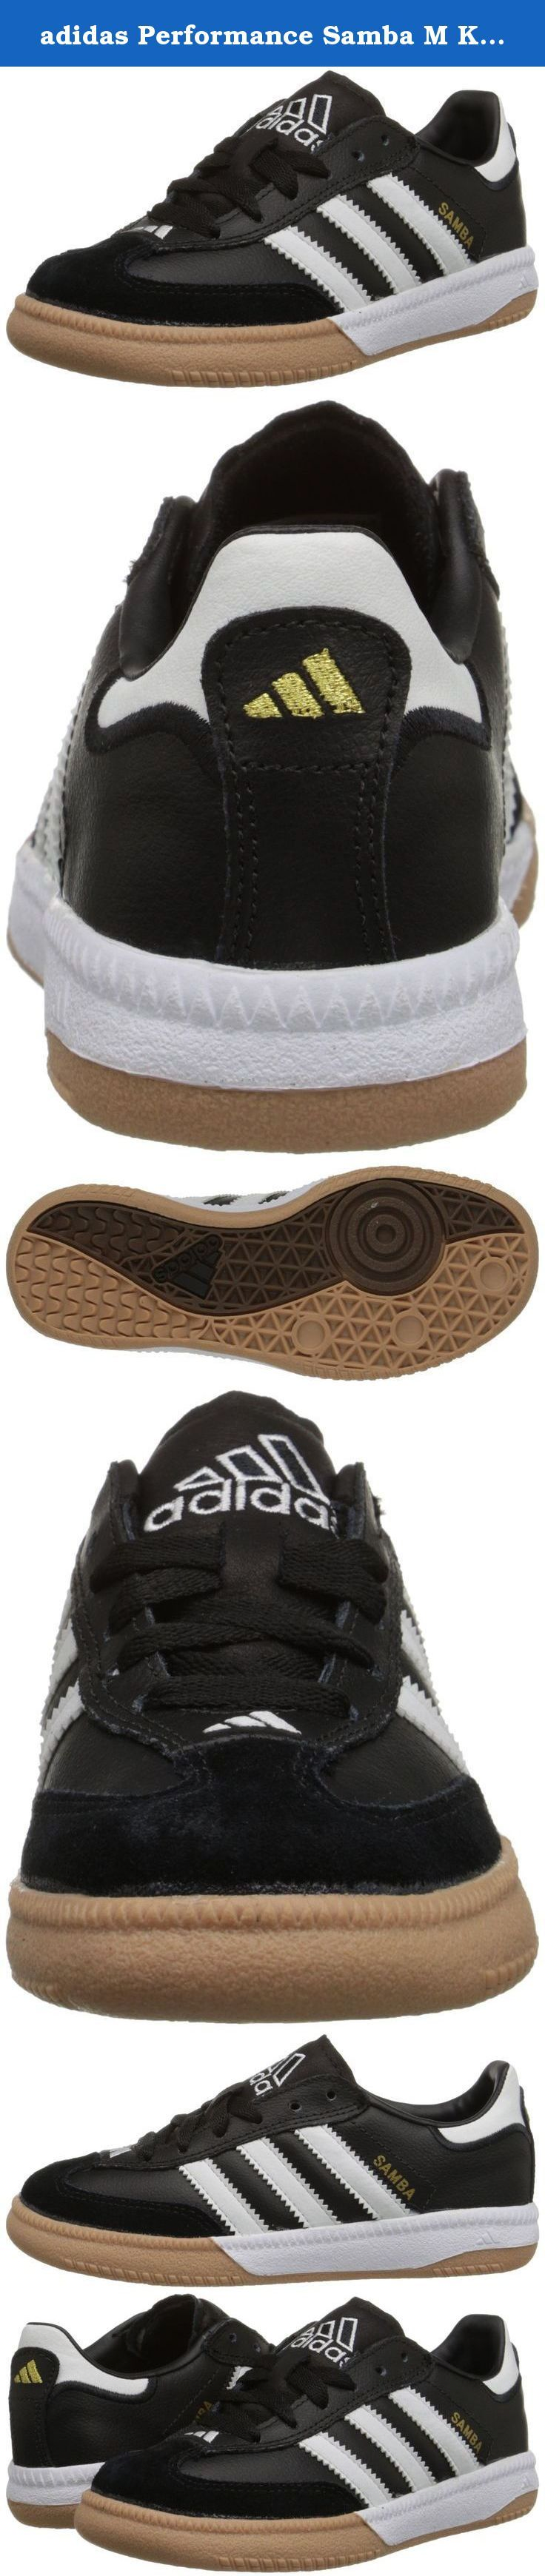 adidas Performance Samba M K Indoor Soccer Shoe (Little Kid/Big Kid). Kids Soccer Shoe.